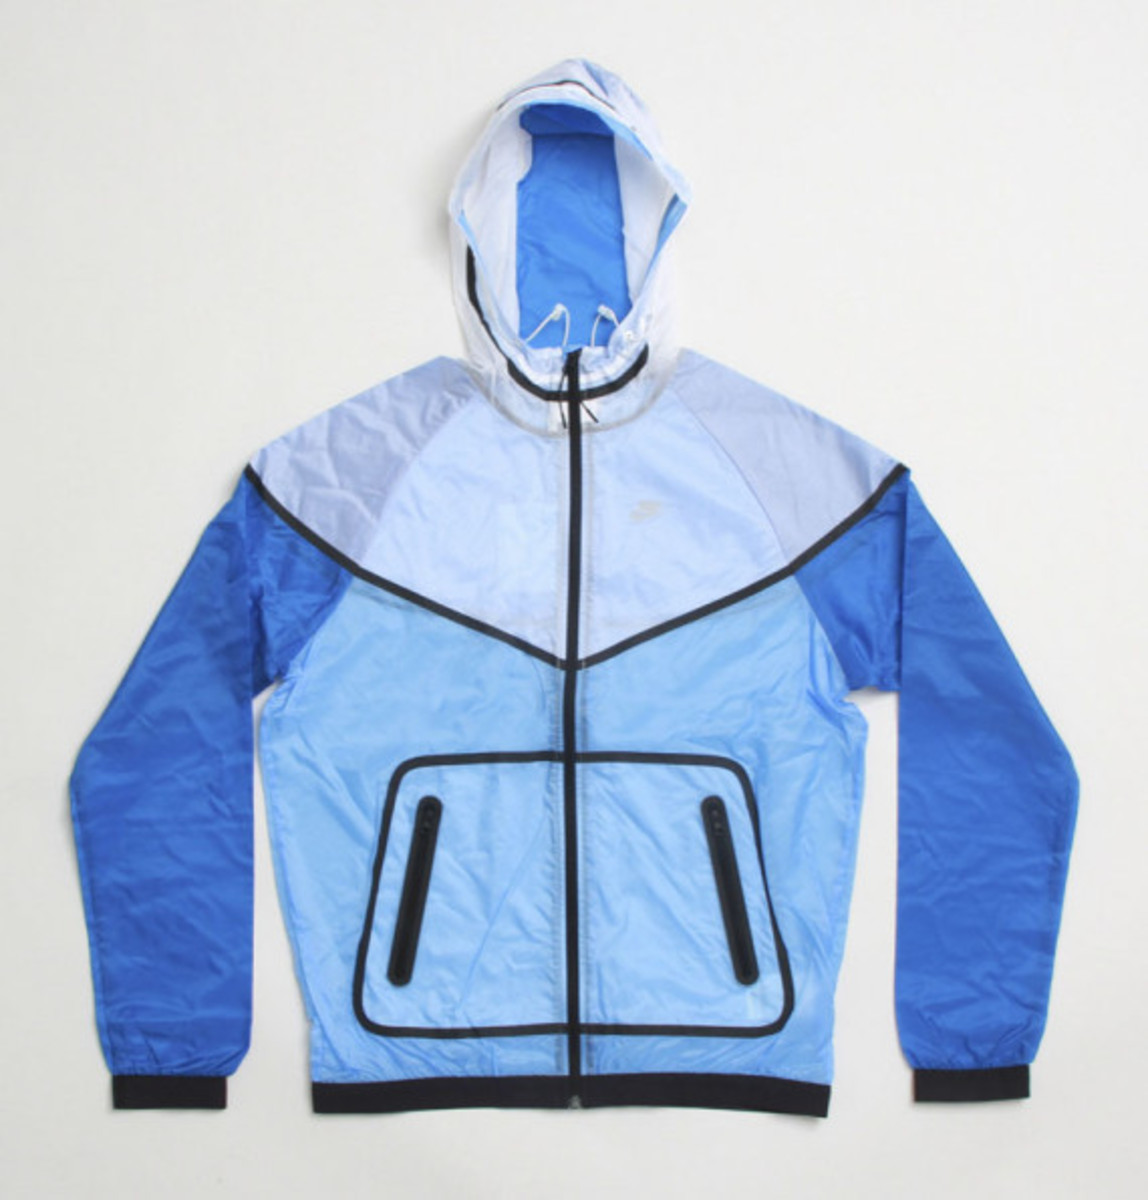 fragment design x Nike Lab Fragment Tech Windrunner Jacket - 5